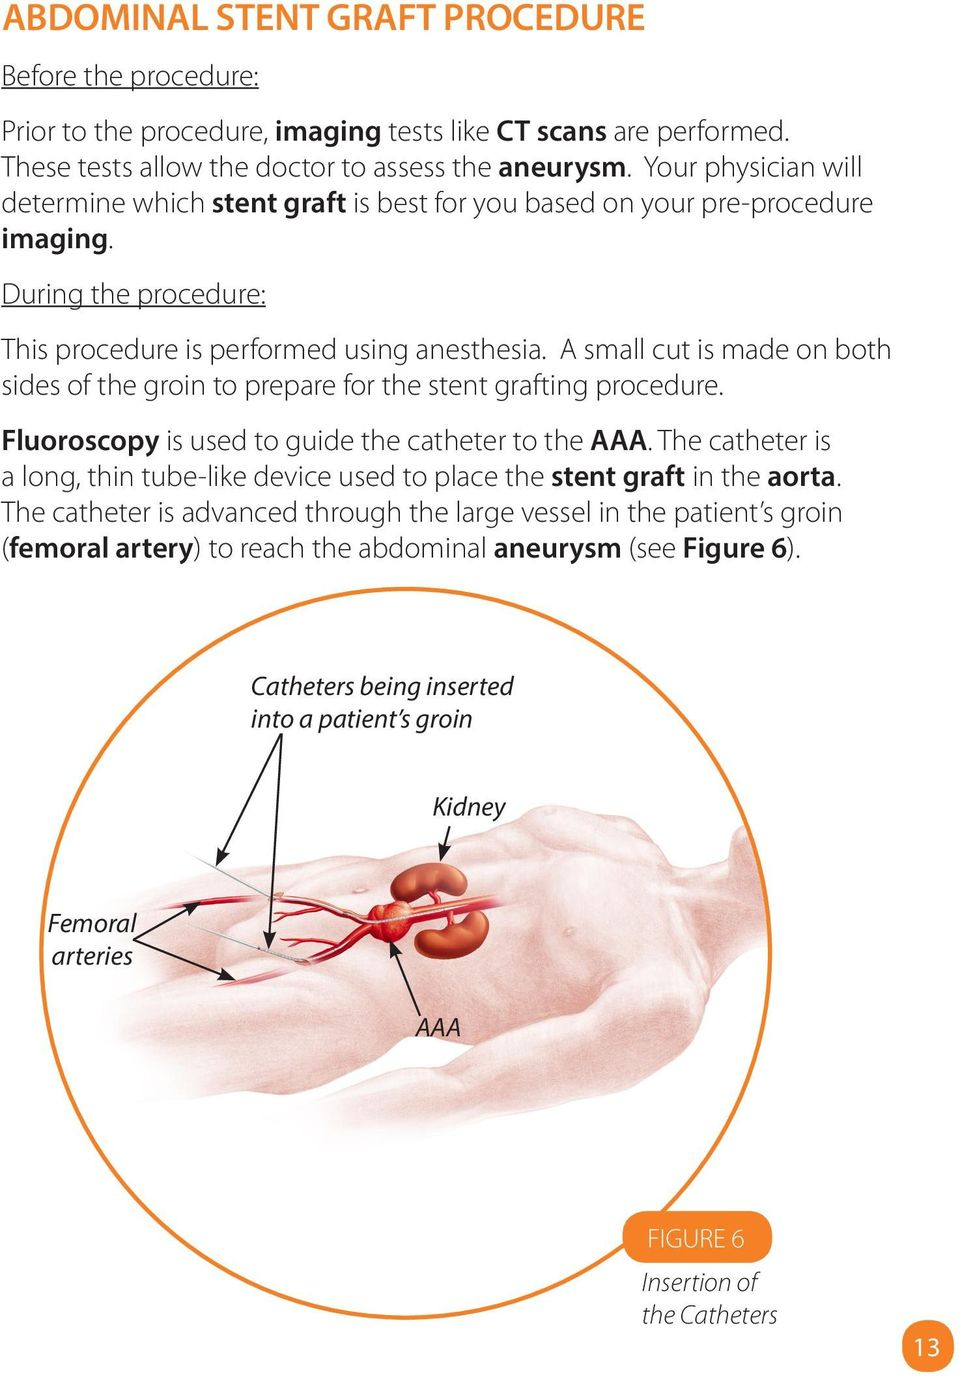 A small cut is made on both sides of the groin to prepare for the stent grafting procedure. Fluoroscopy is used to guide the catheter to the AAA.